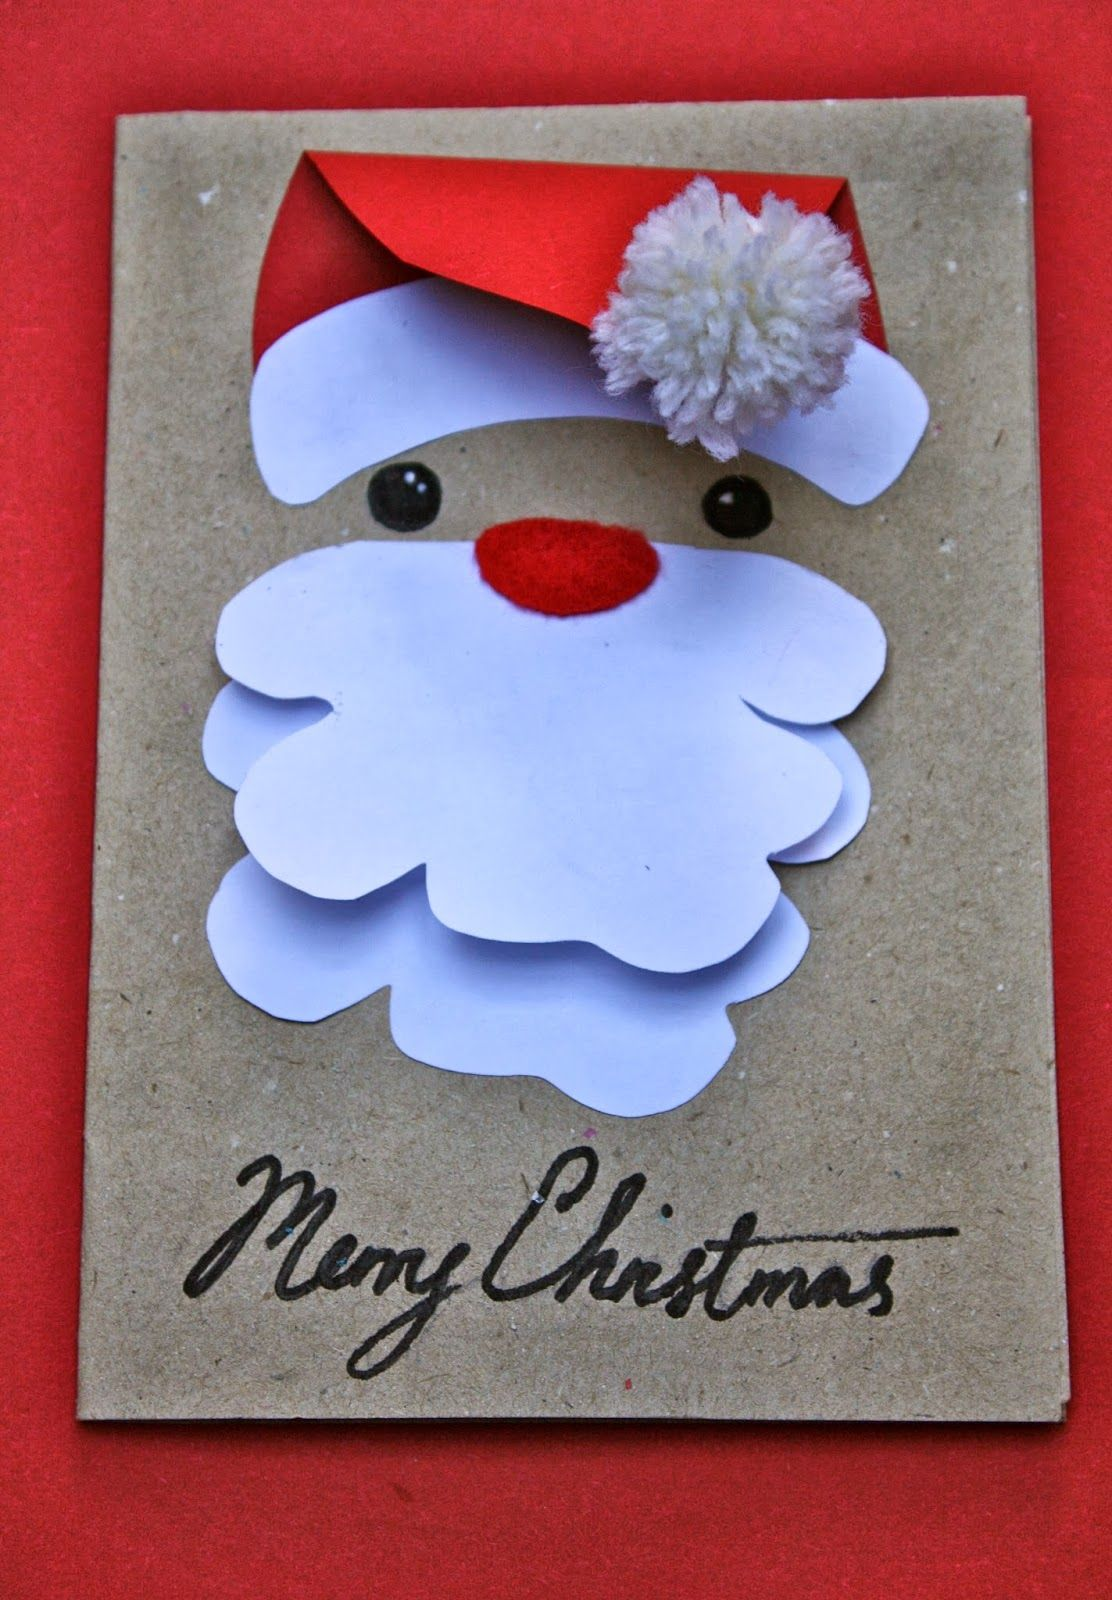 Xmas Stuff For > Christmas Card Photo Ideas Pinterest